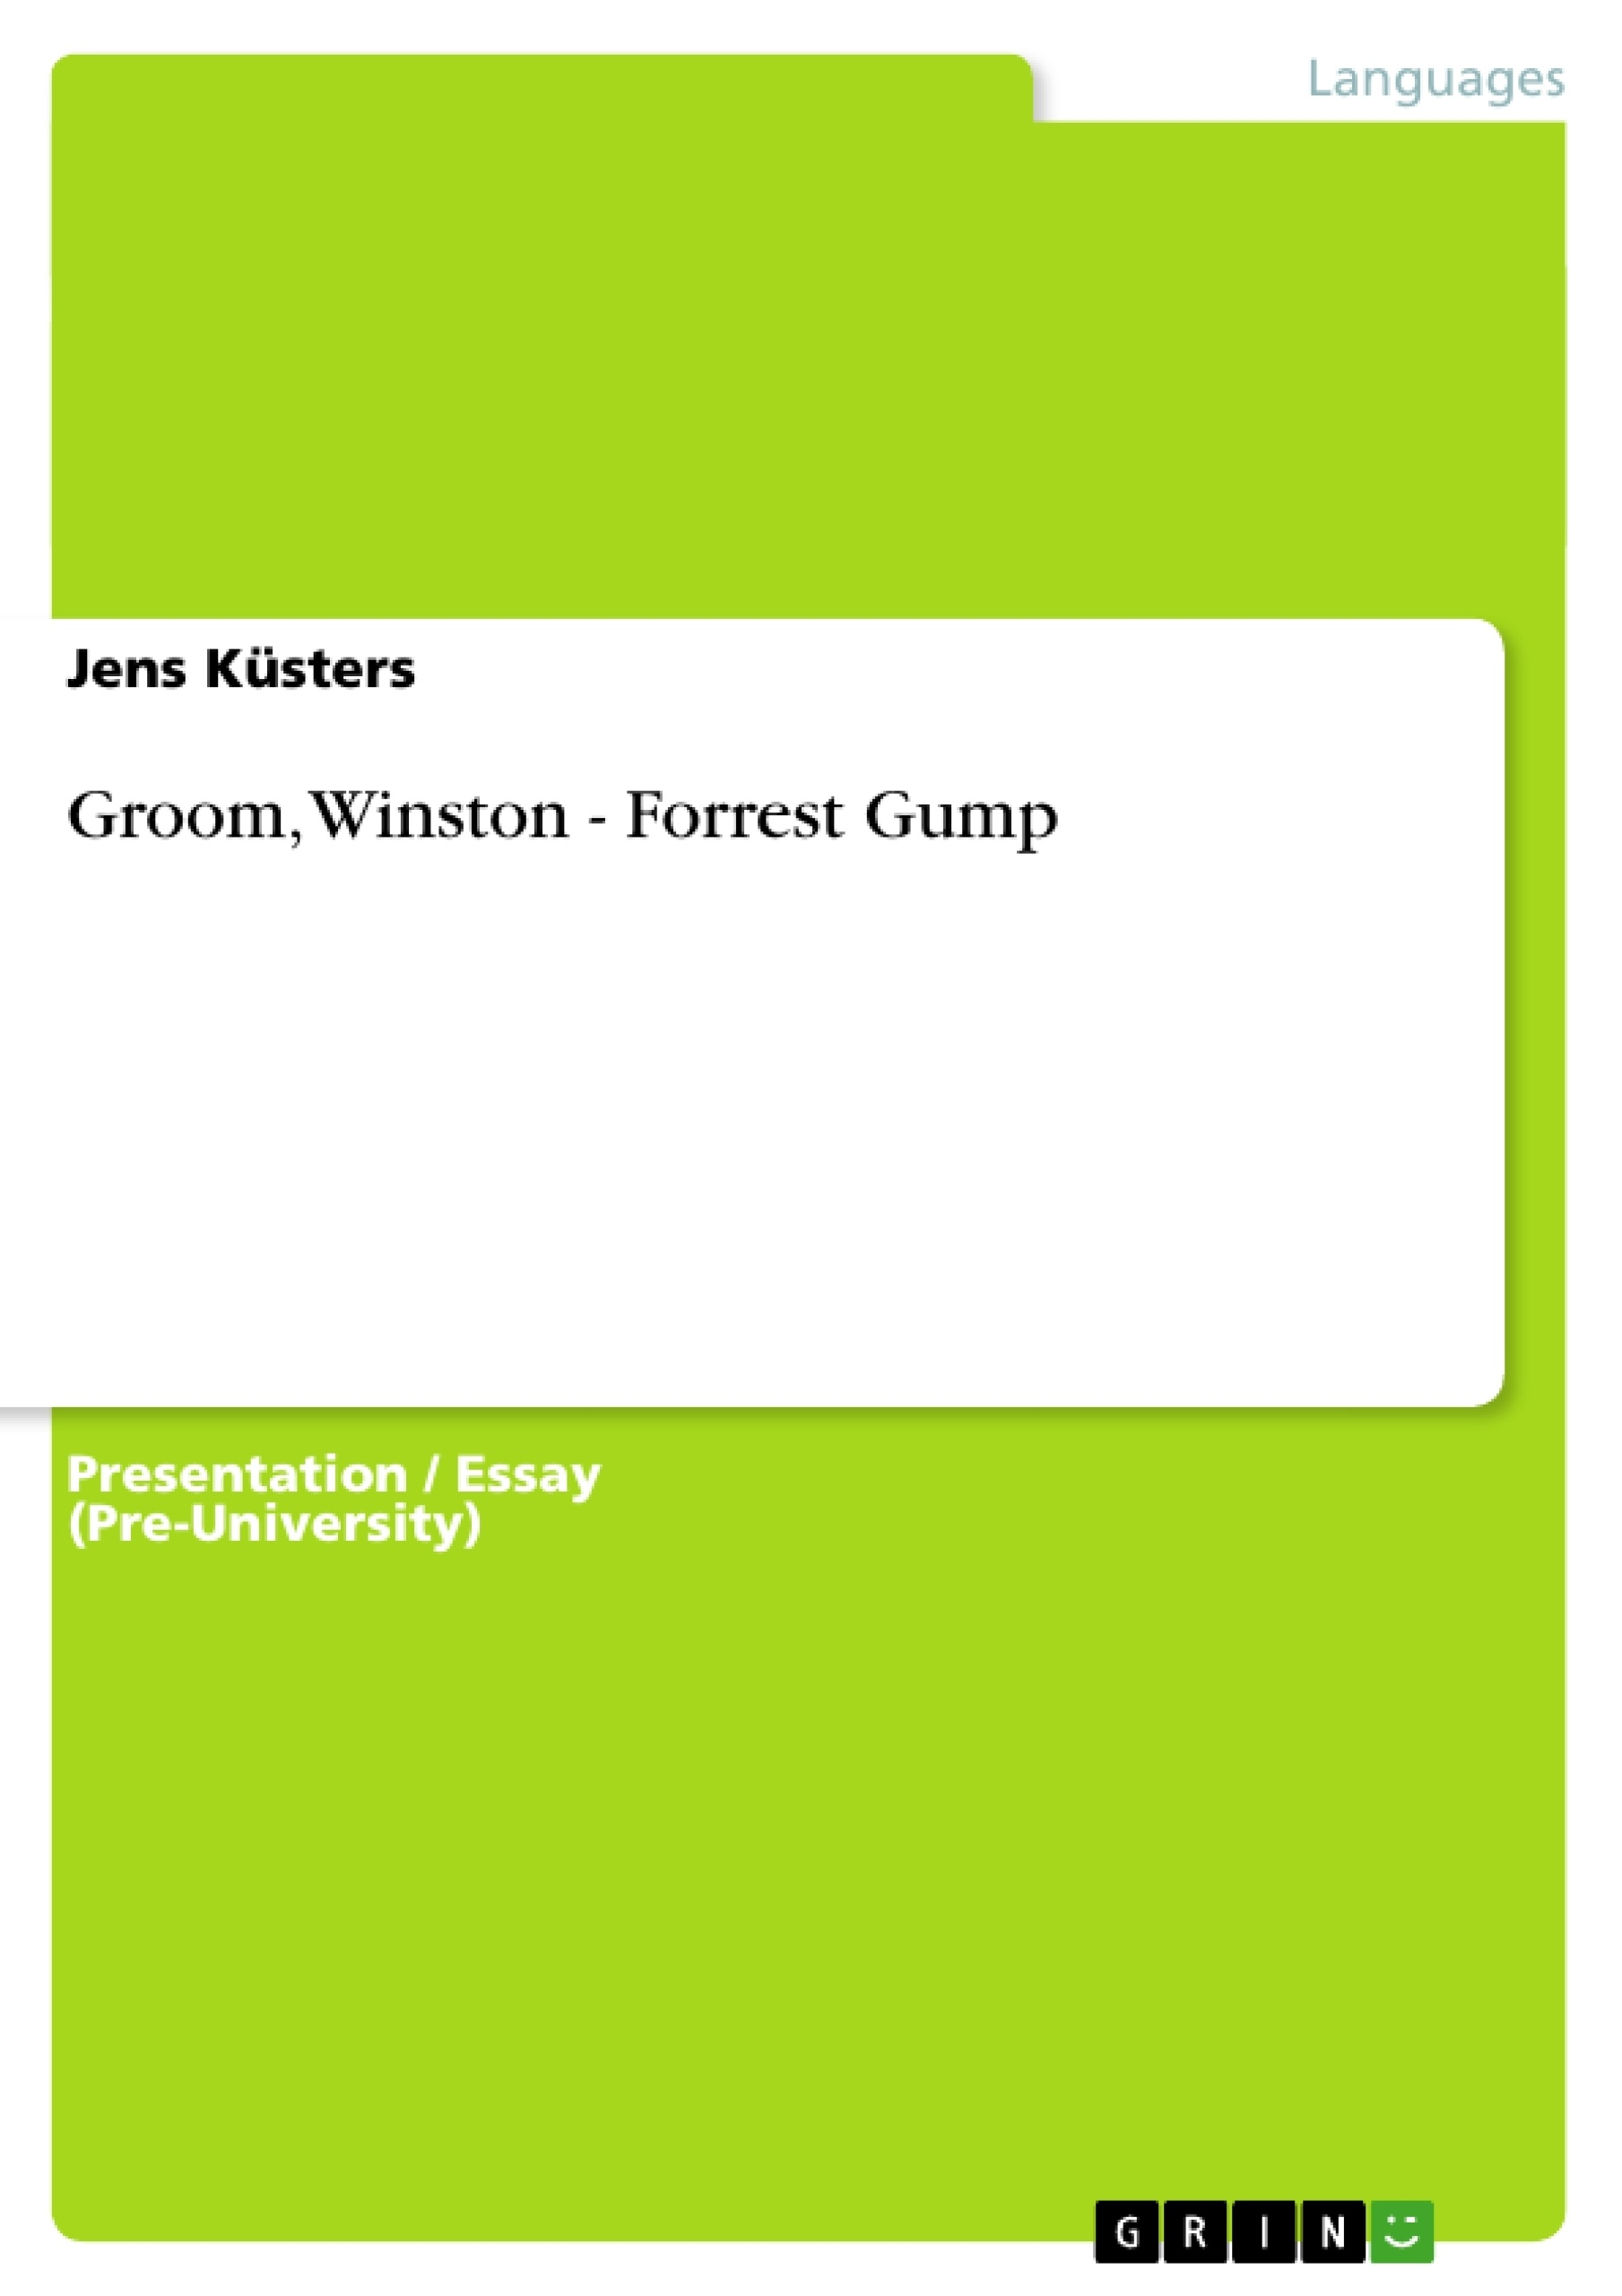 essay forrest gump groom winston forrest gump self publishing at grin